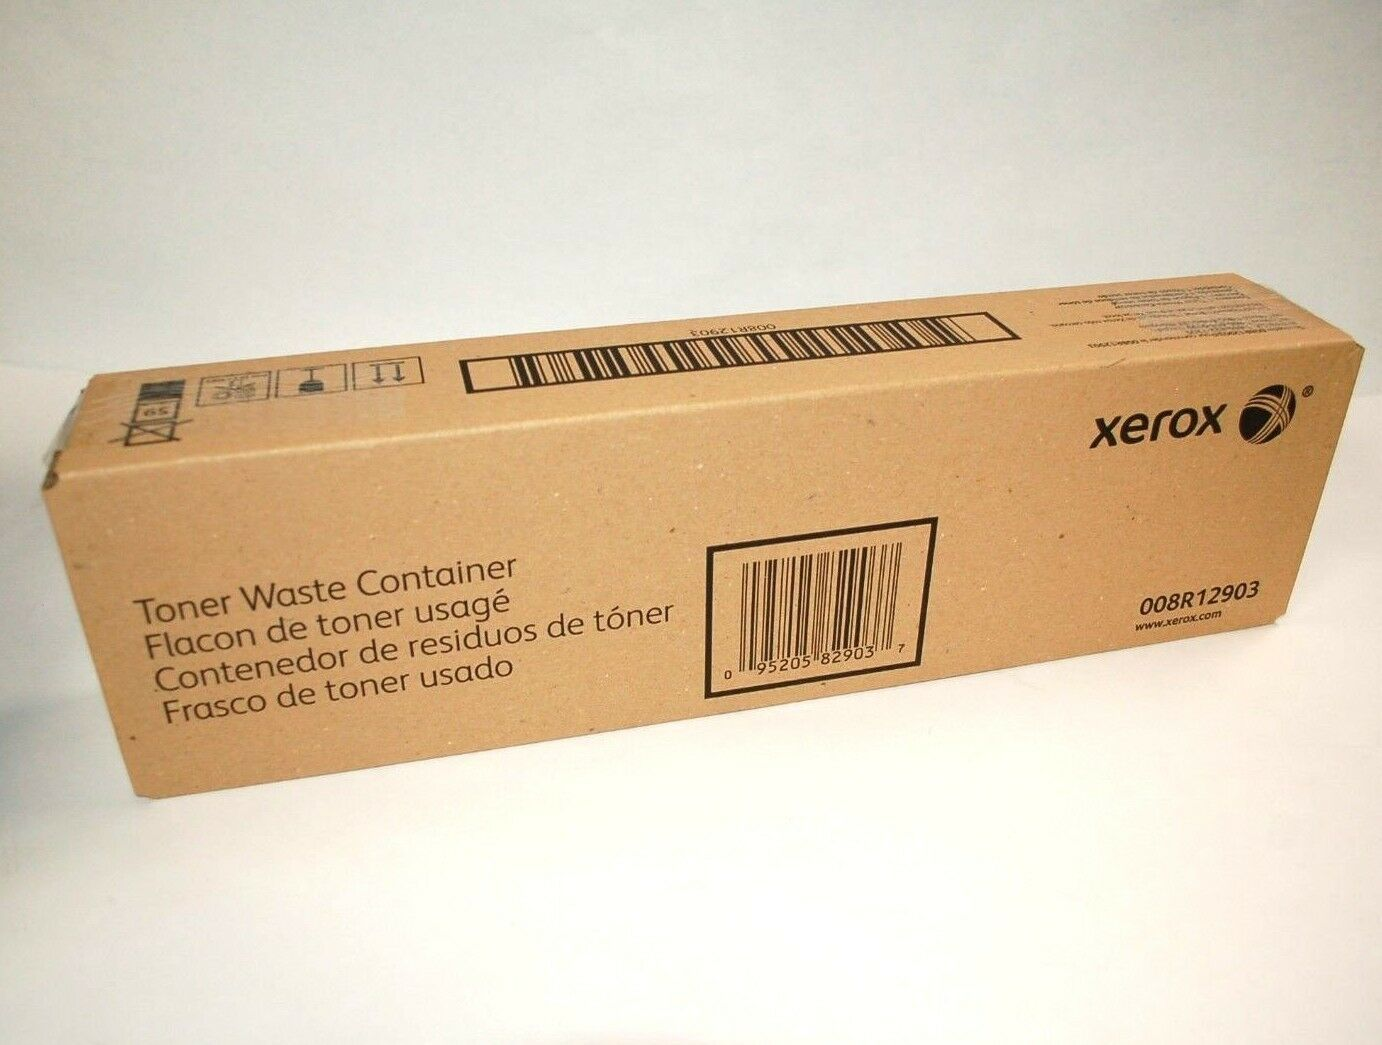 Primary image for Genuine XEROX Toner Waste Container 008R12903 NEW - SEALED